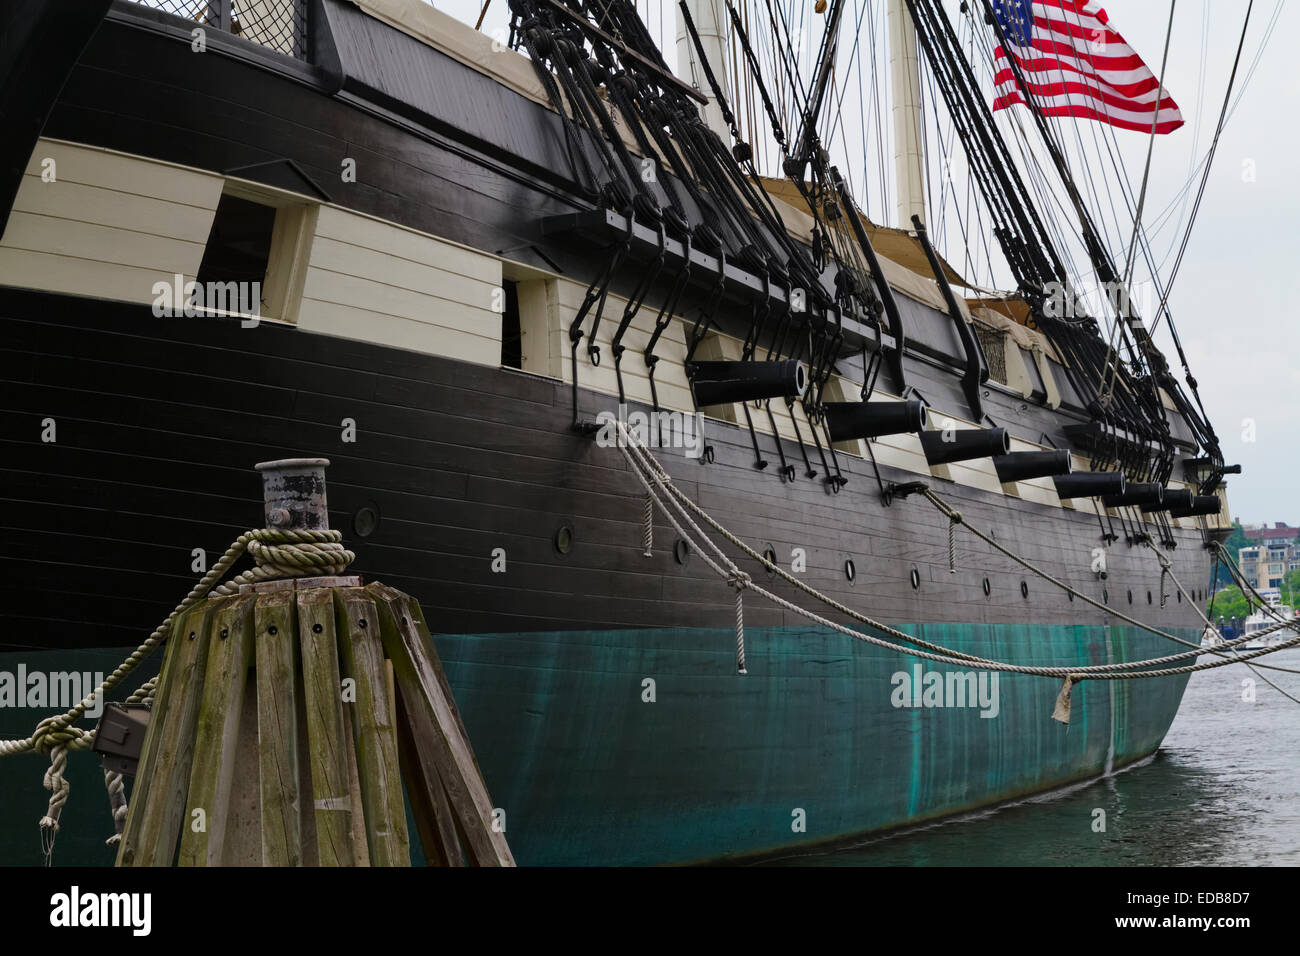 Port Side Close Up View of the USS Constellation Warship, Baltimore Harbor, Maryland - Stock Image